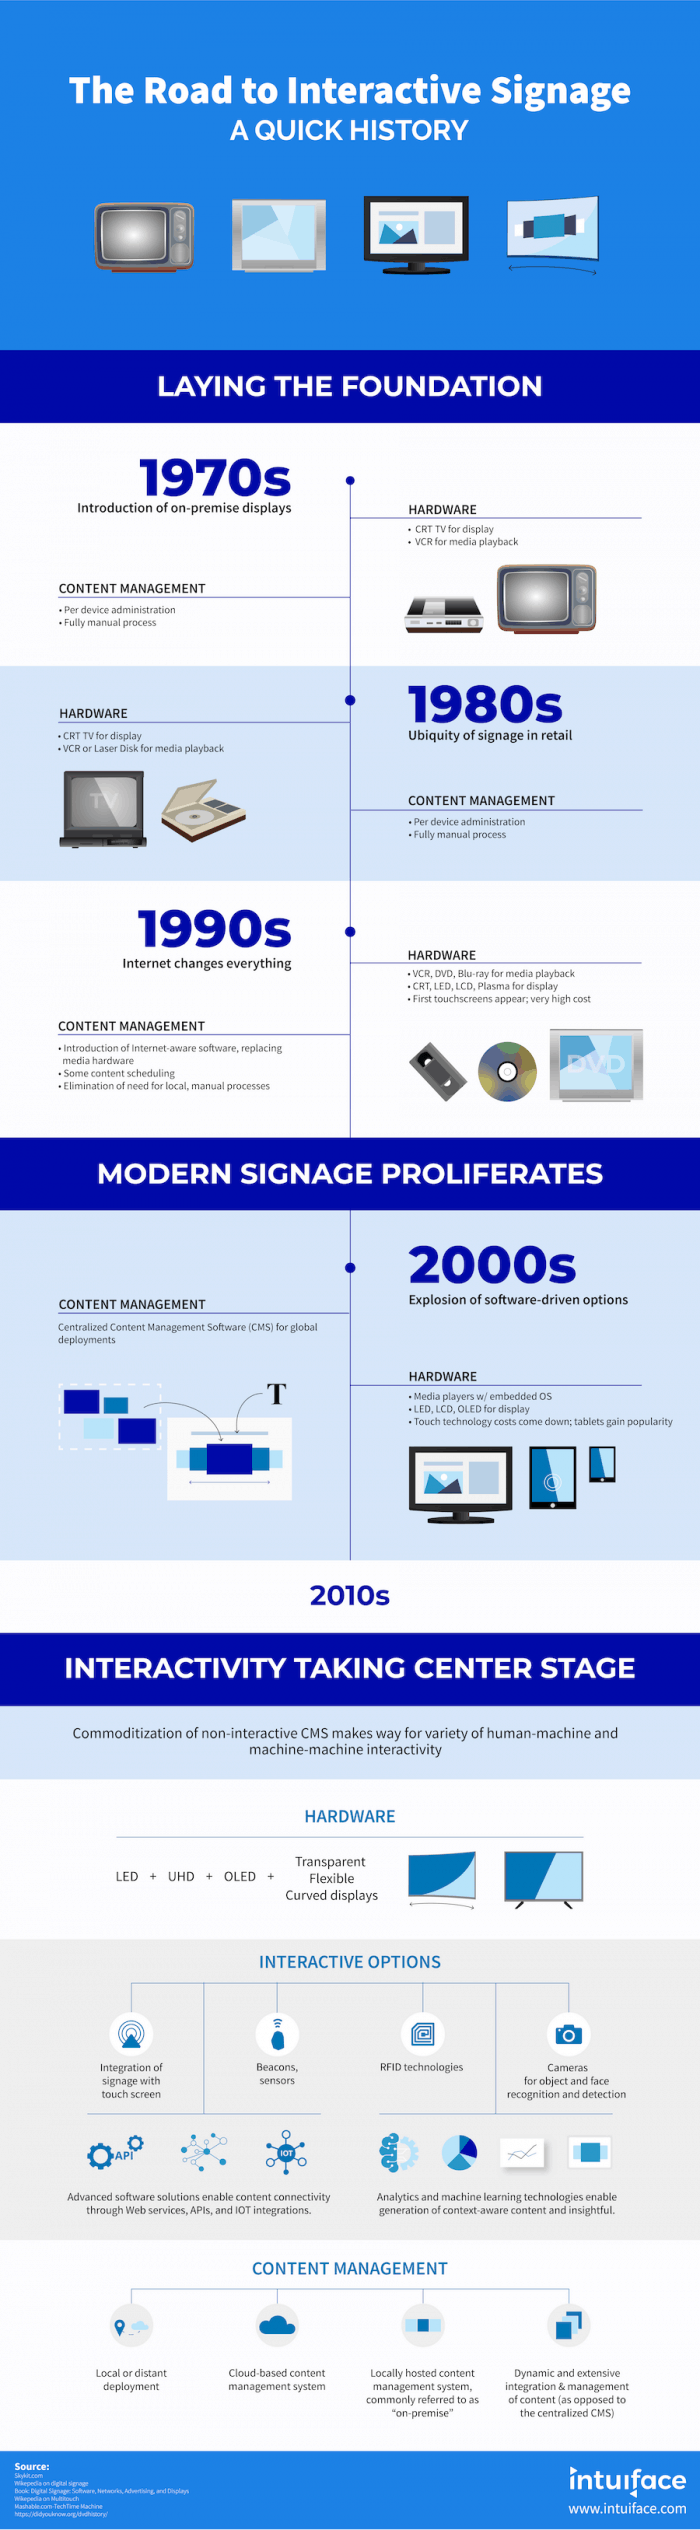 history of interactive digital signage